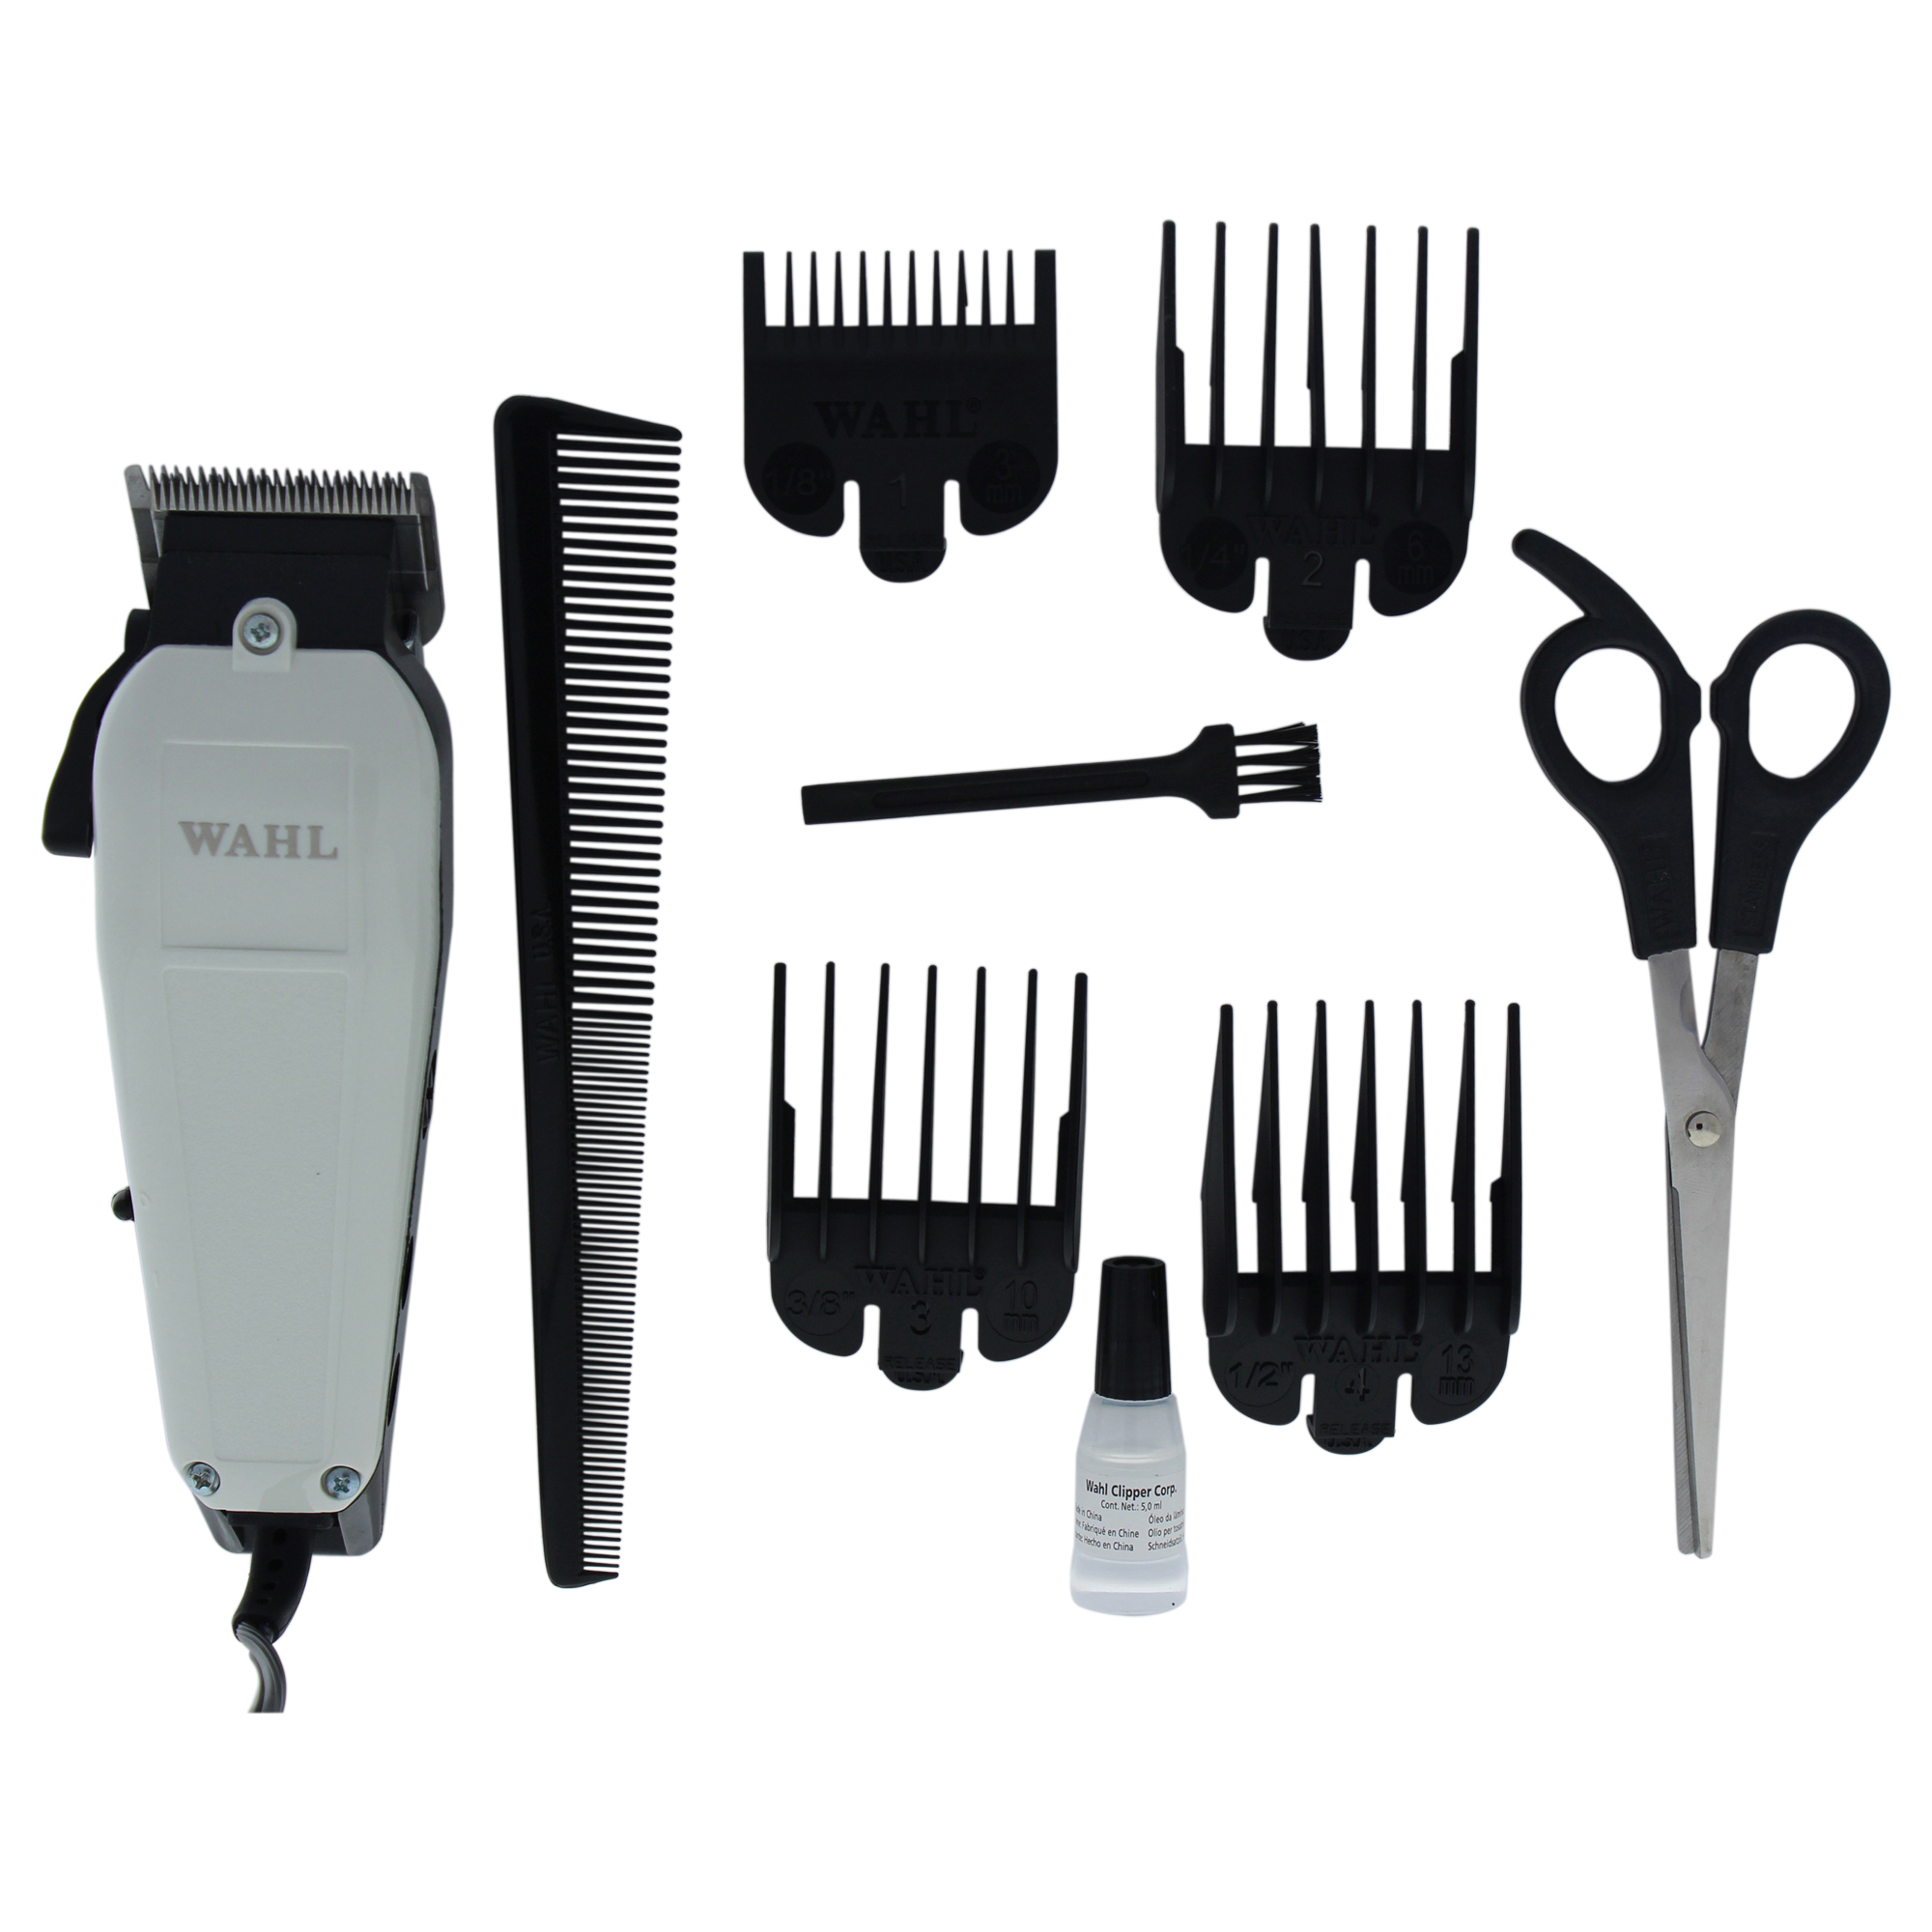 WAHL Professional Deluxe Home Haircut - Model # 8645-500 - White/Black - 1 Pc Kit Trimmer